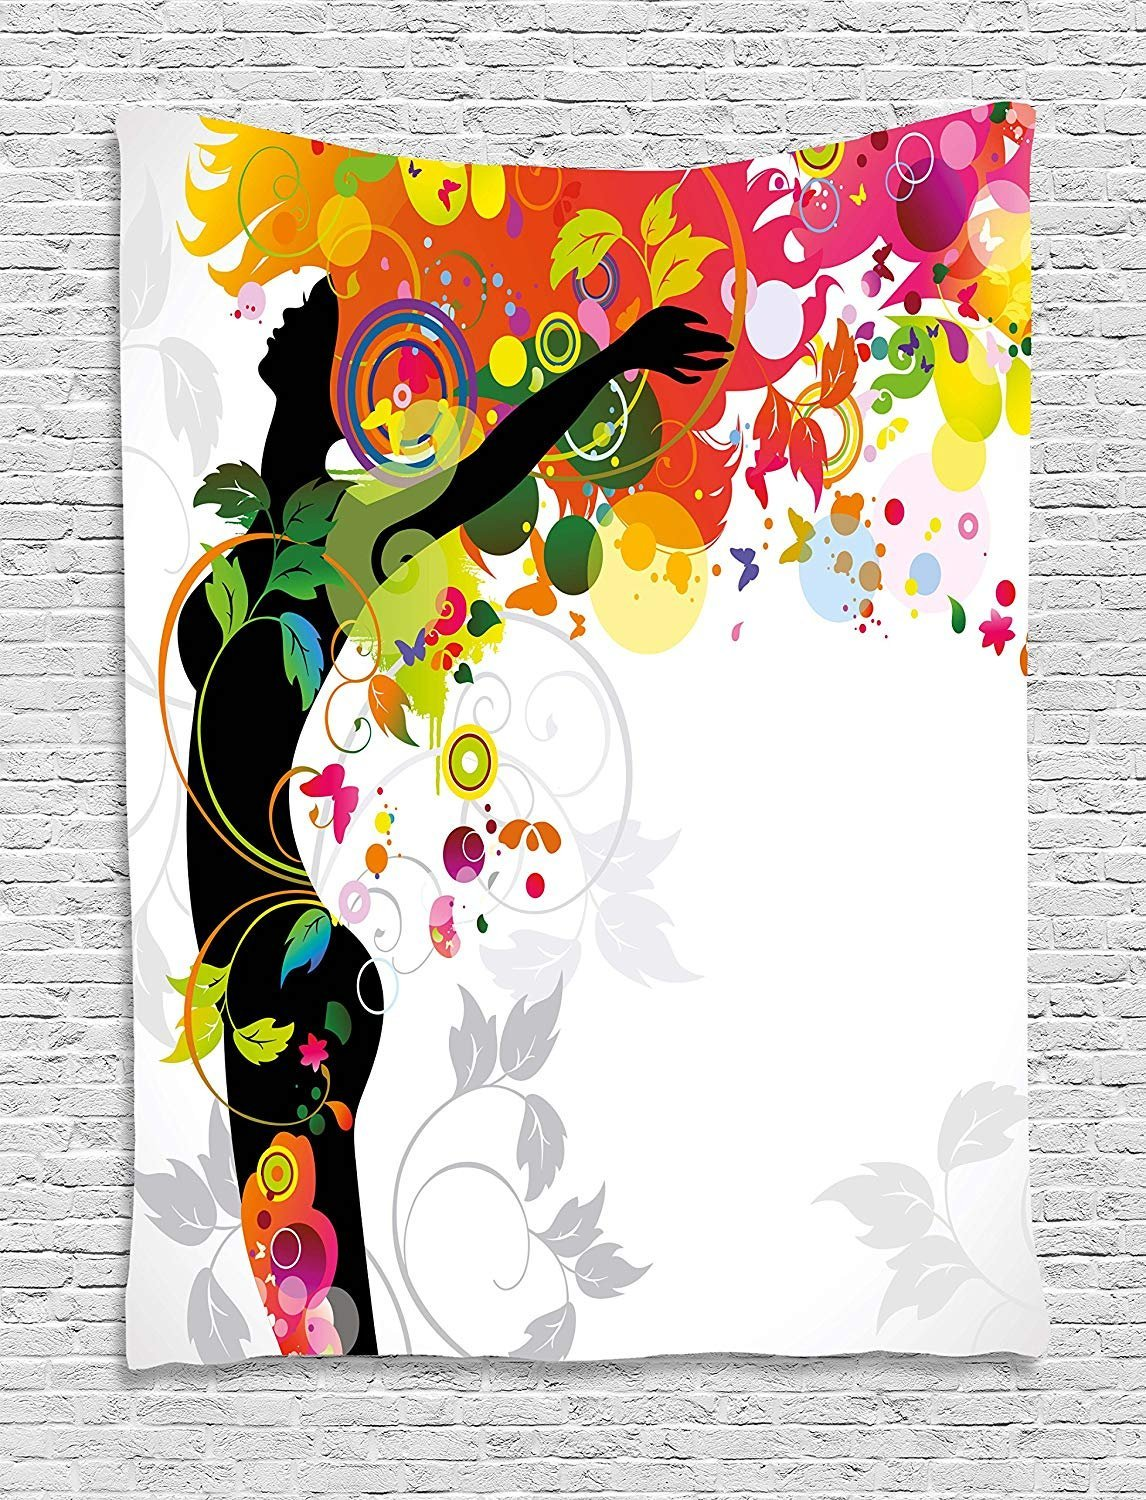 XHFITCLtd Colorful Tapestry, Woman Silhouette with Vibrant Colored Hair Abstract Freedom Expressing Image Print, Wall Hanging for Bedroom Living Room Dorm, 60 W X 80 L Inches, Multicolor by XHFITCLtd